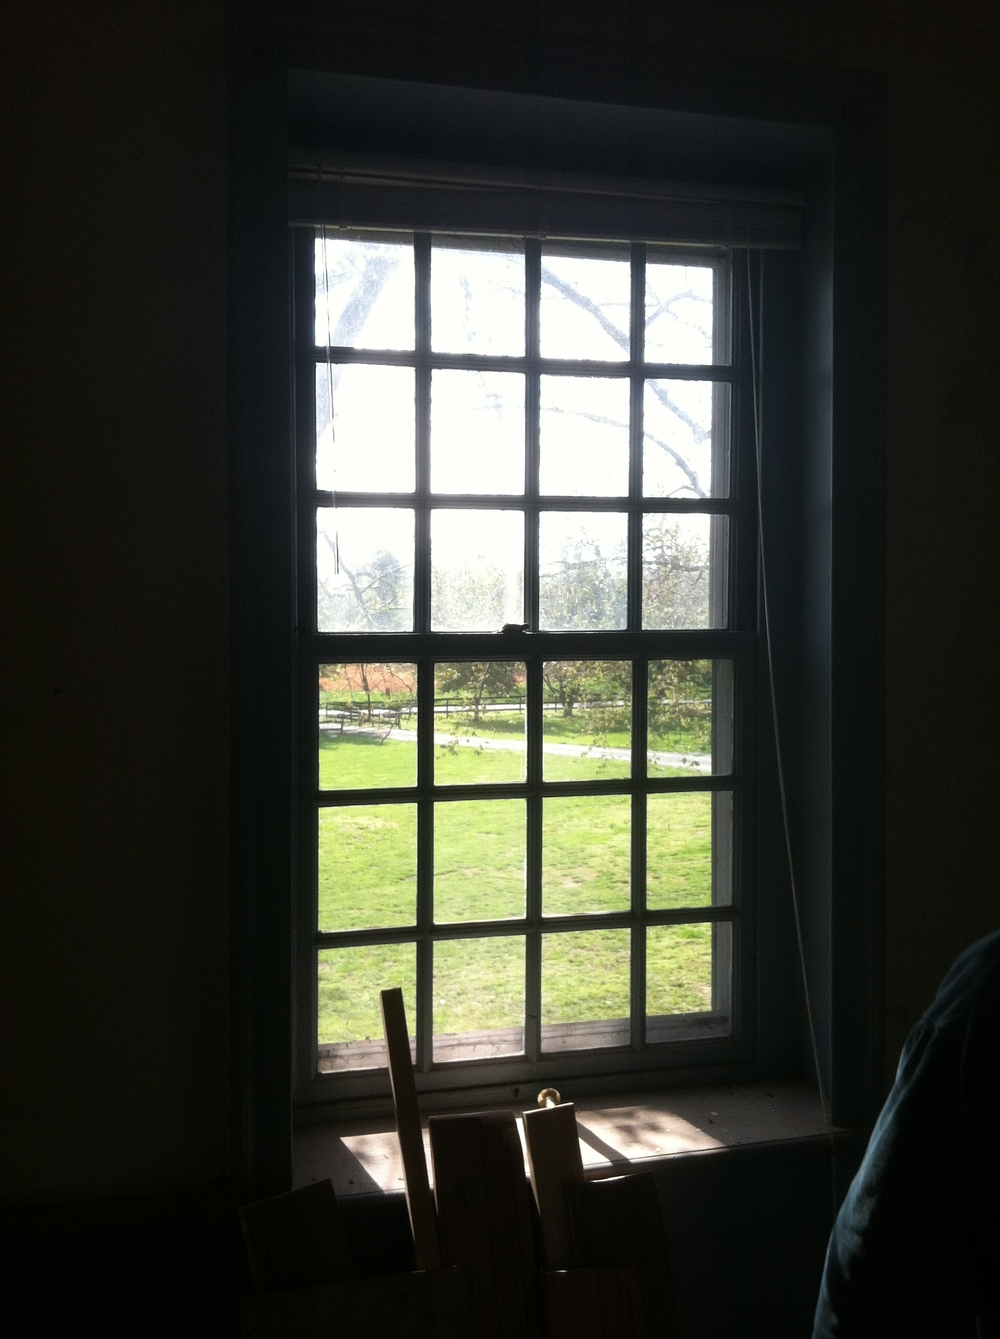 The same window that George Washington looked through while a guest at Worsell Manor.